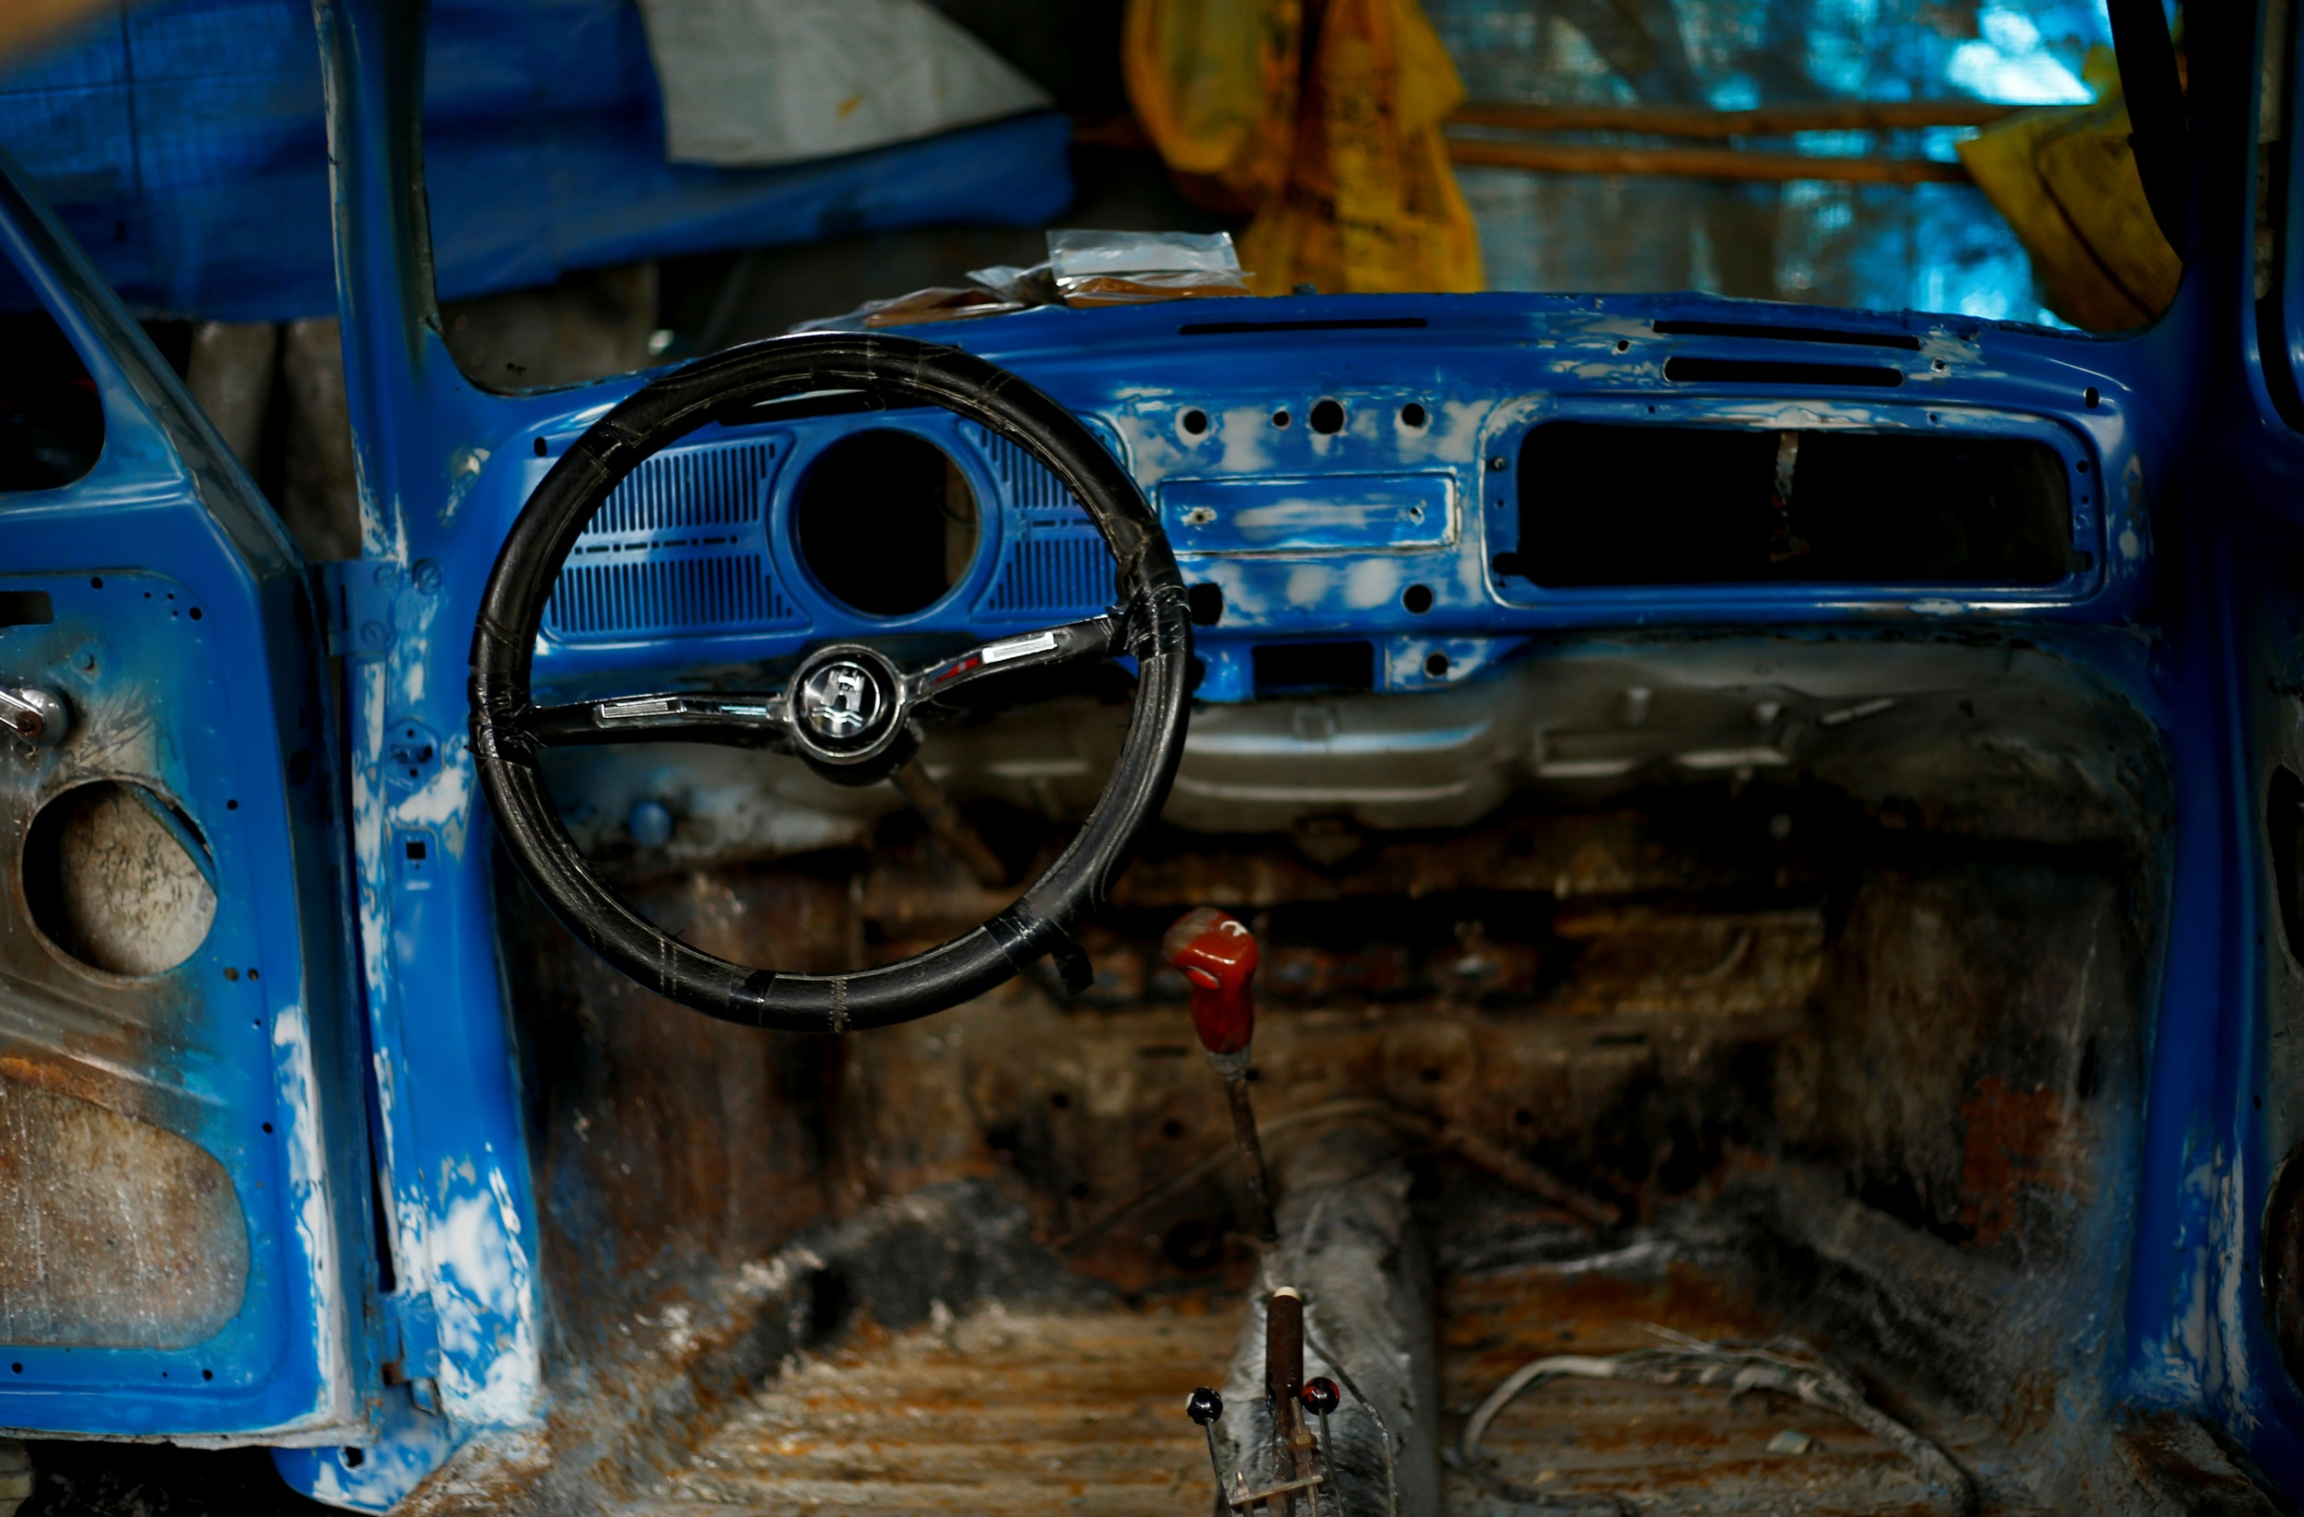 The blue, stripped down interior of a Volkswagen Beetle car is shown along with a black steering wheel.